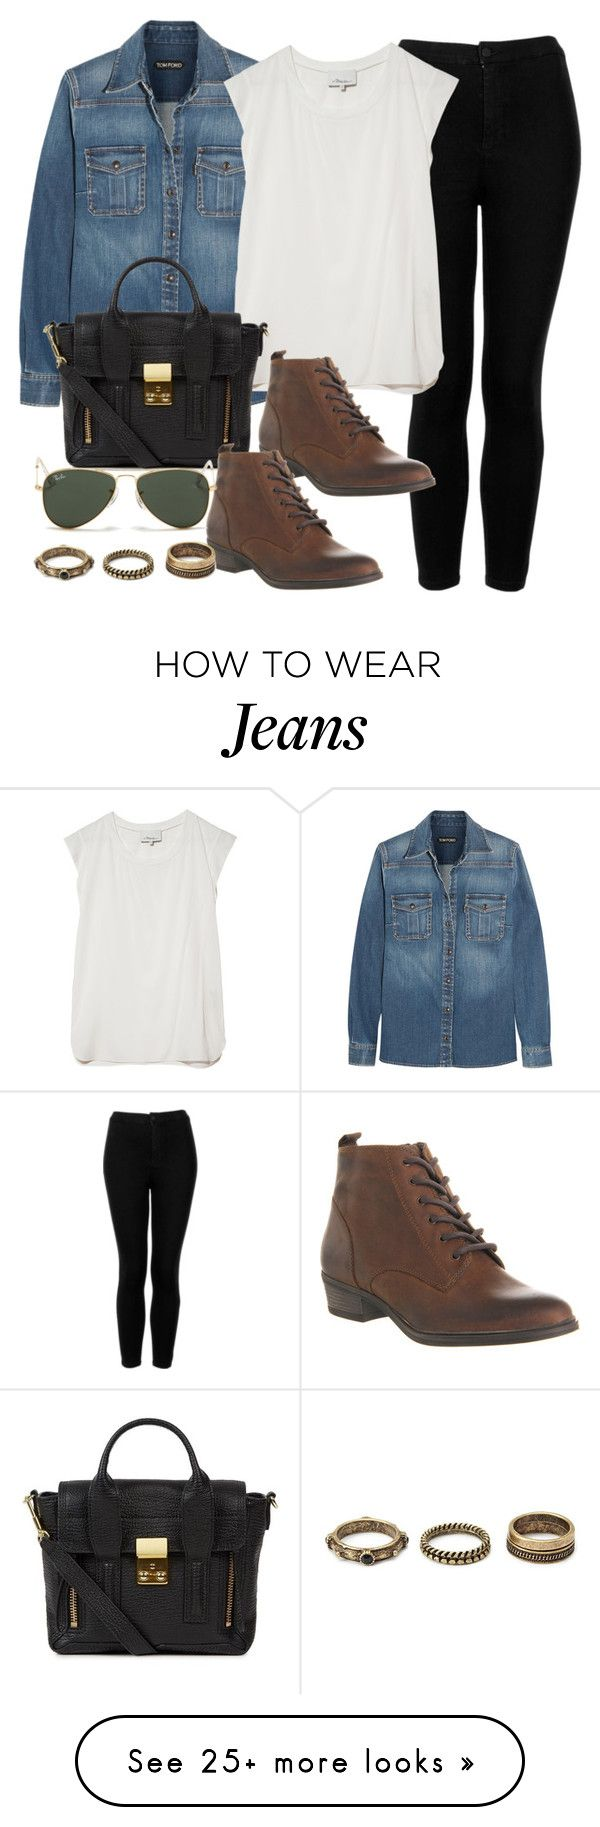 """""""Style #9434"""" by vany-alvarado on Polyvore featuring Tom Ford, Topshop, 3.1 Phillip Lim, Office, Ray-Ban and Forever 21"""